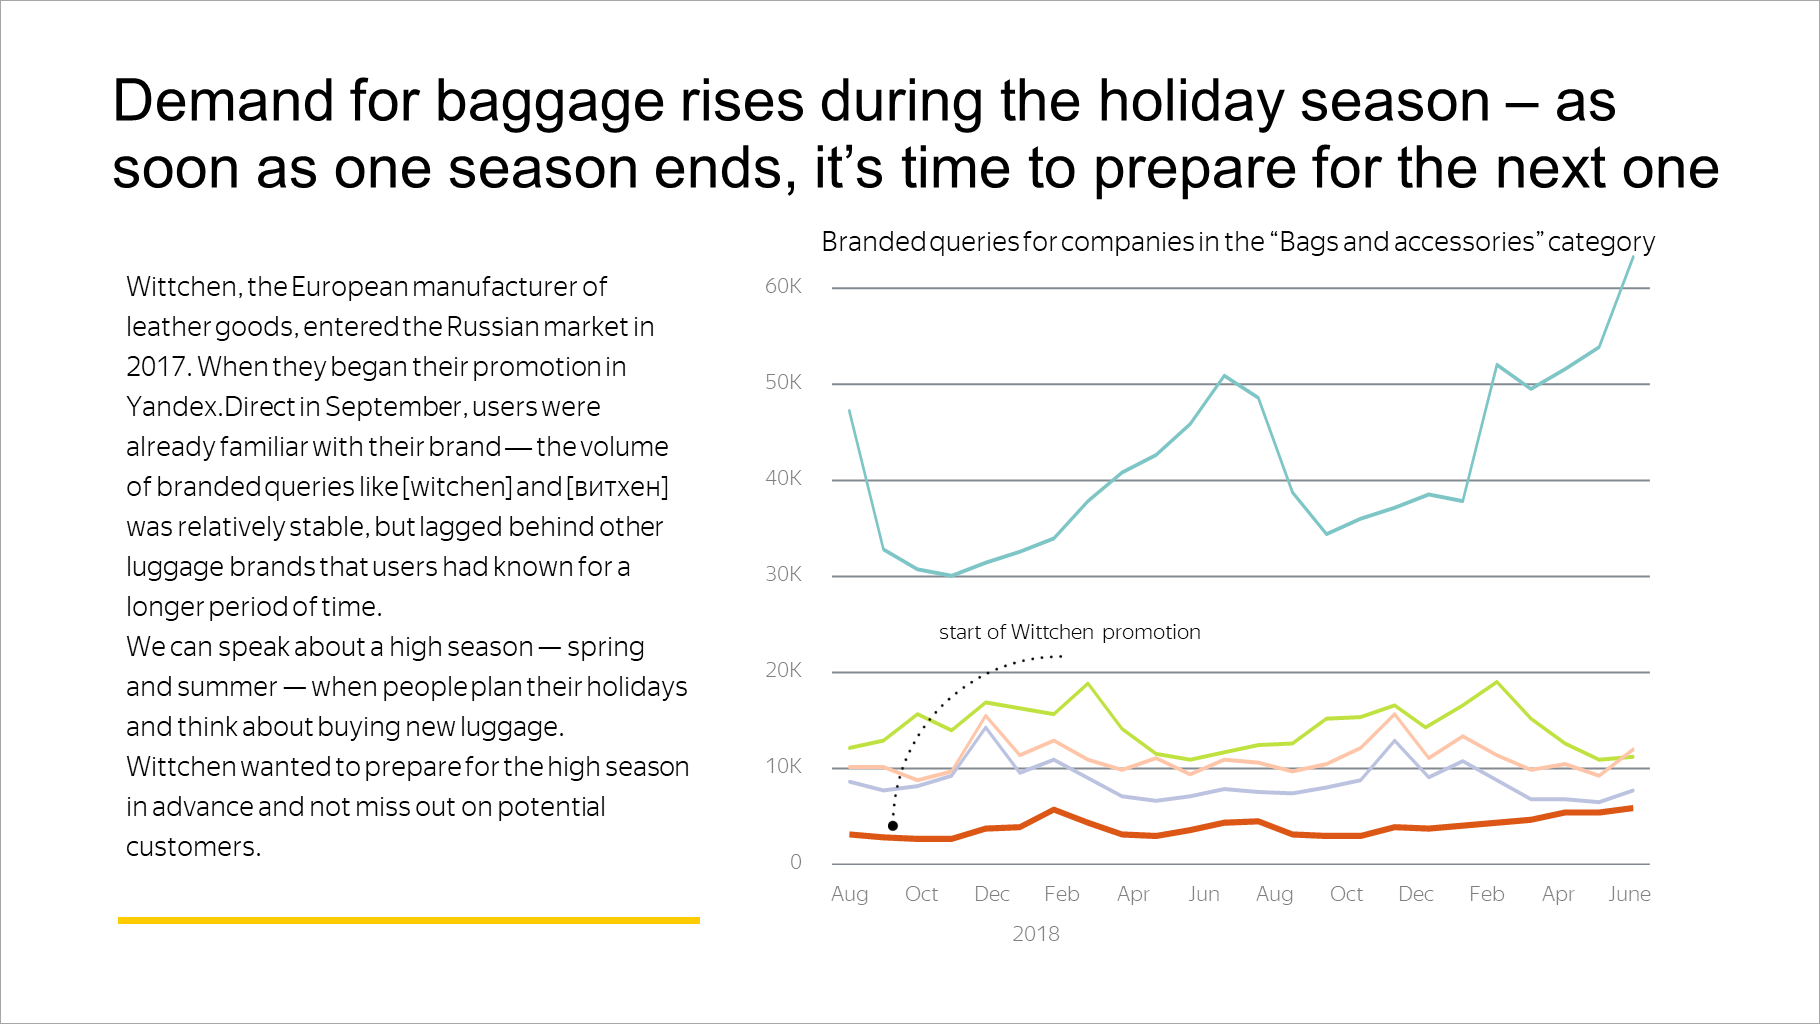 Demand for baggage rises during the holiday season – as soon as one season ends, it's time to prepare for the next one